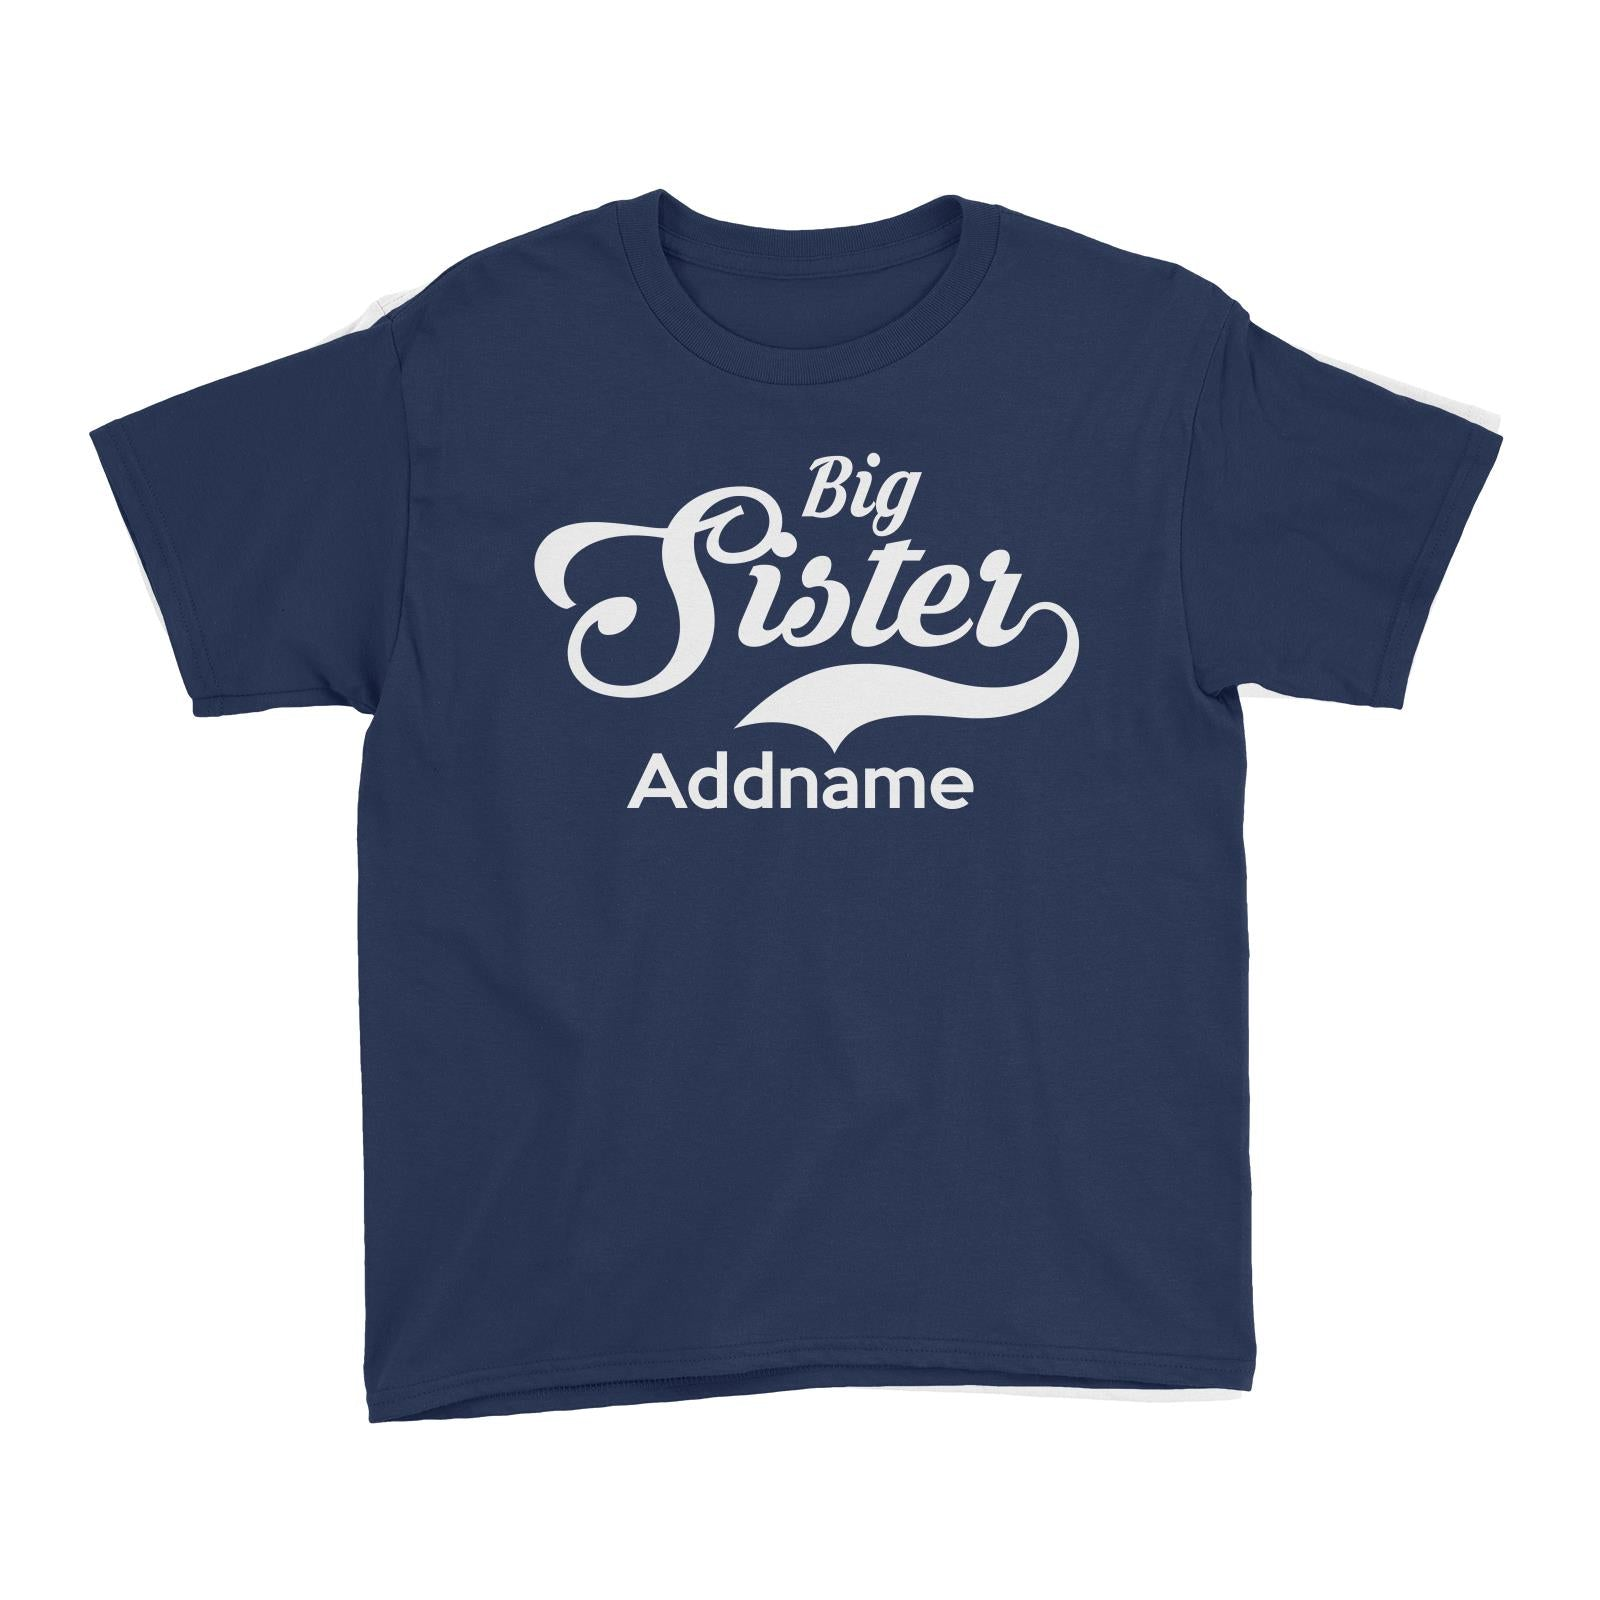 Retro Big Sister Addname Kid's T-Shirt  Matching Family Personalizable Designs